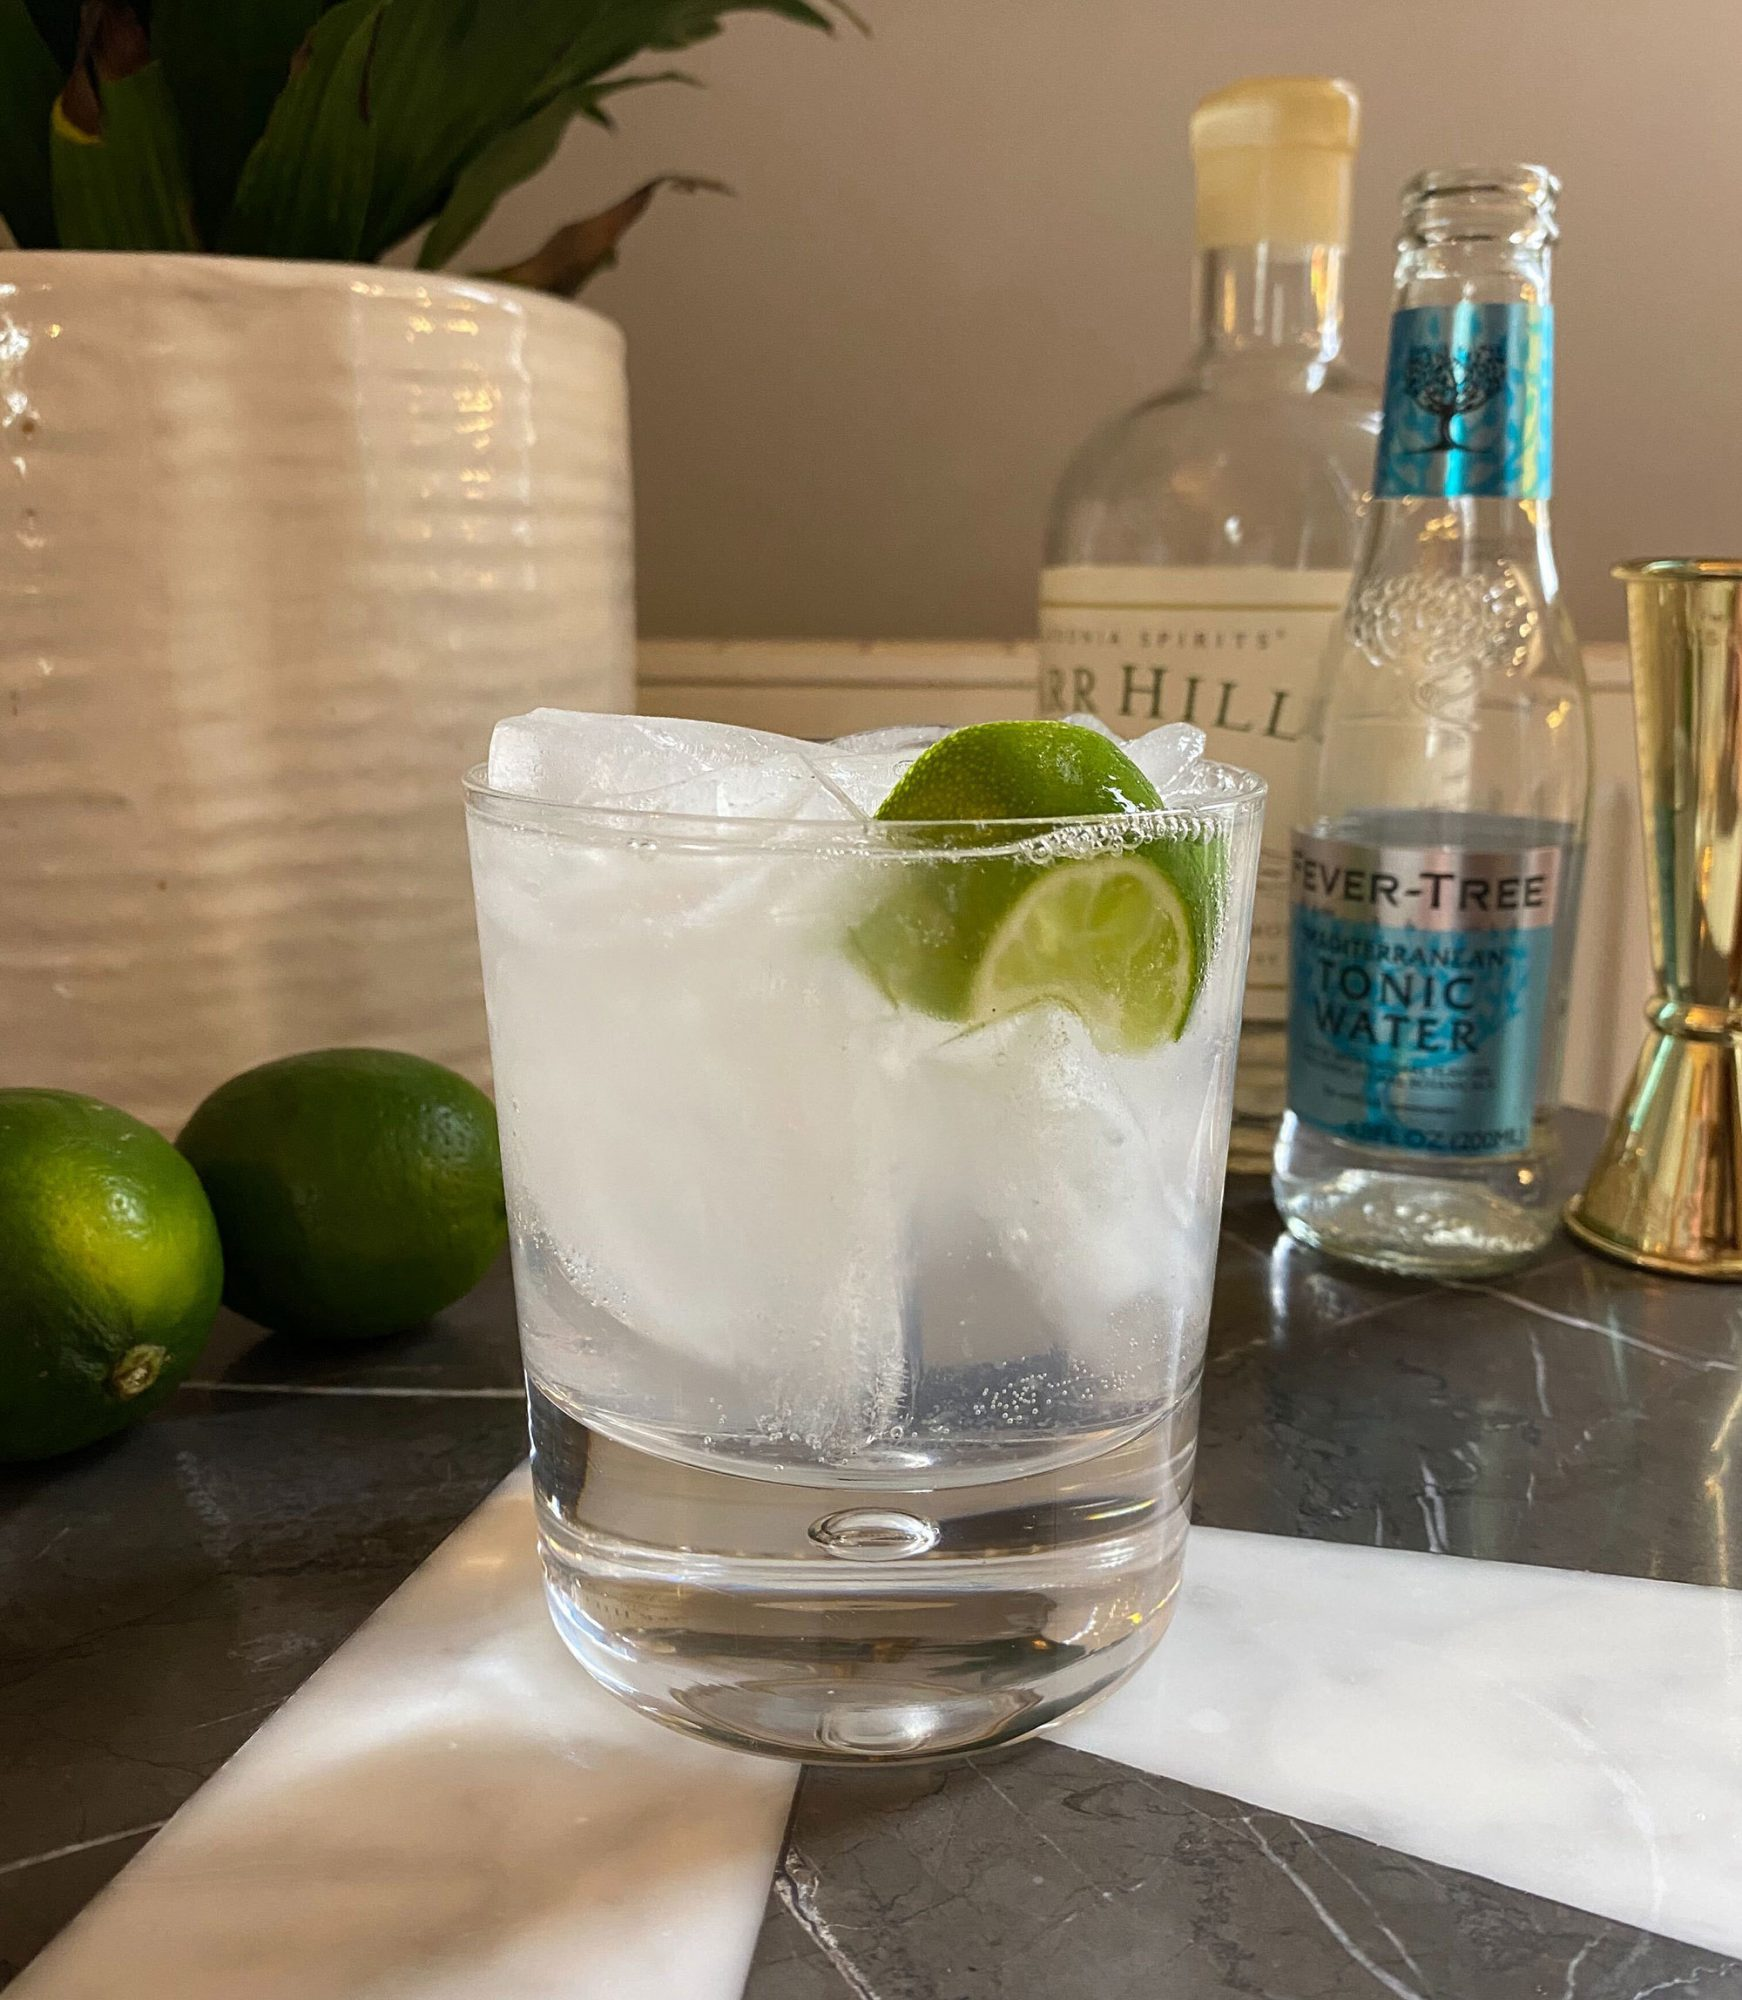 My Secret to Making the Best Gin & Tonics? It's All About the Tonic Water